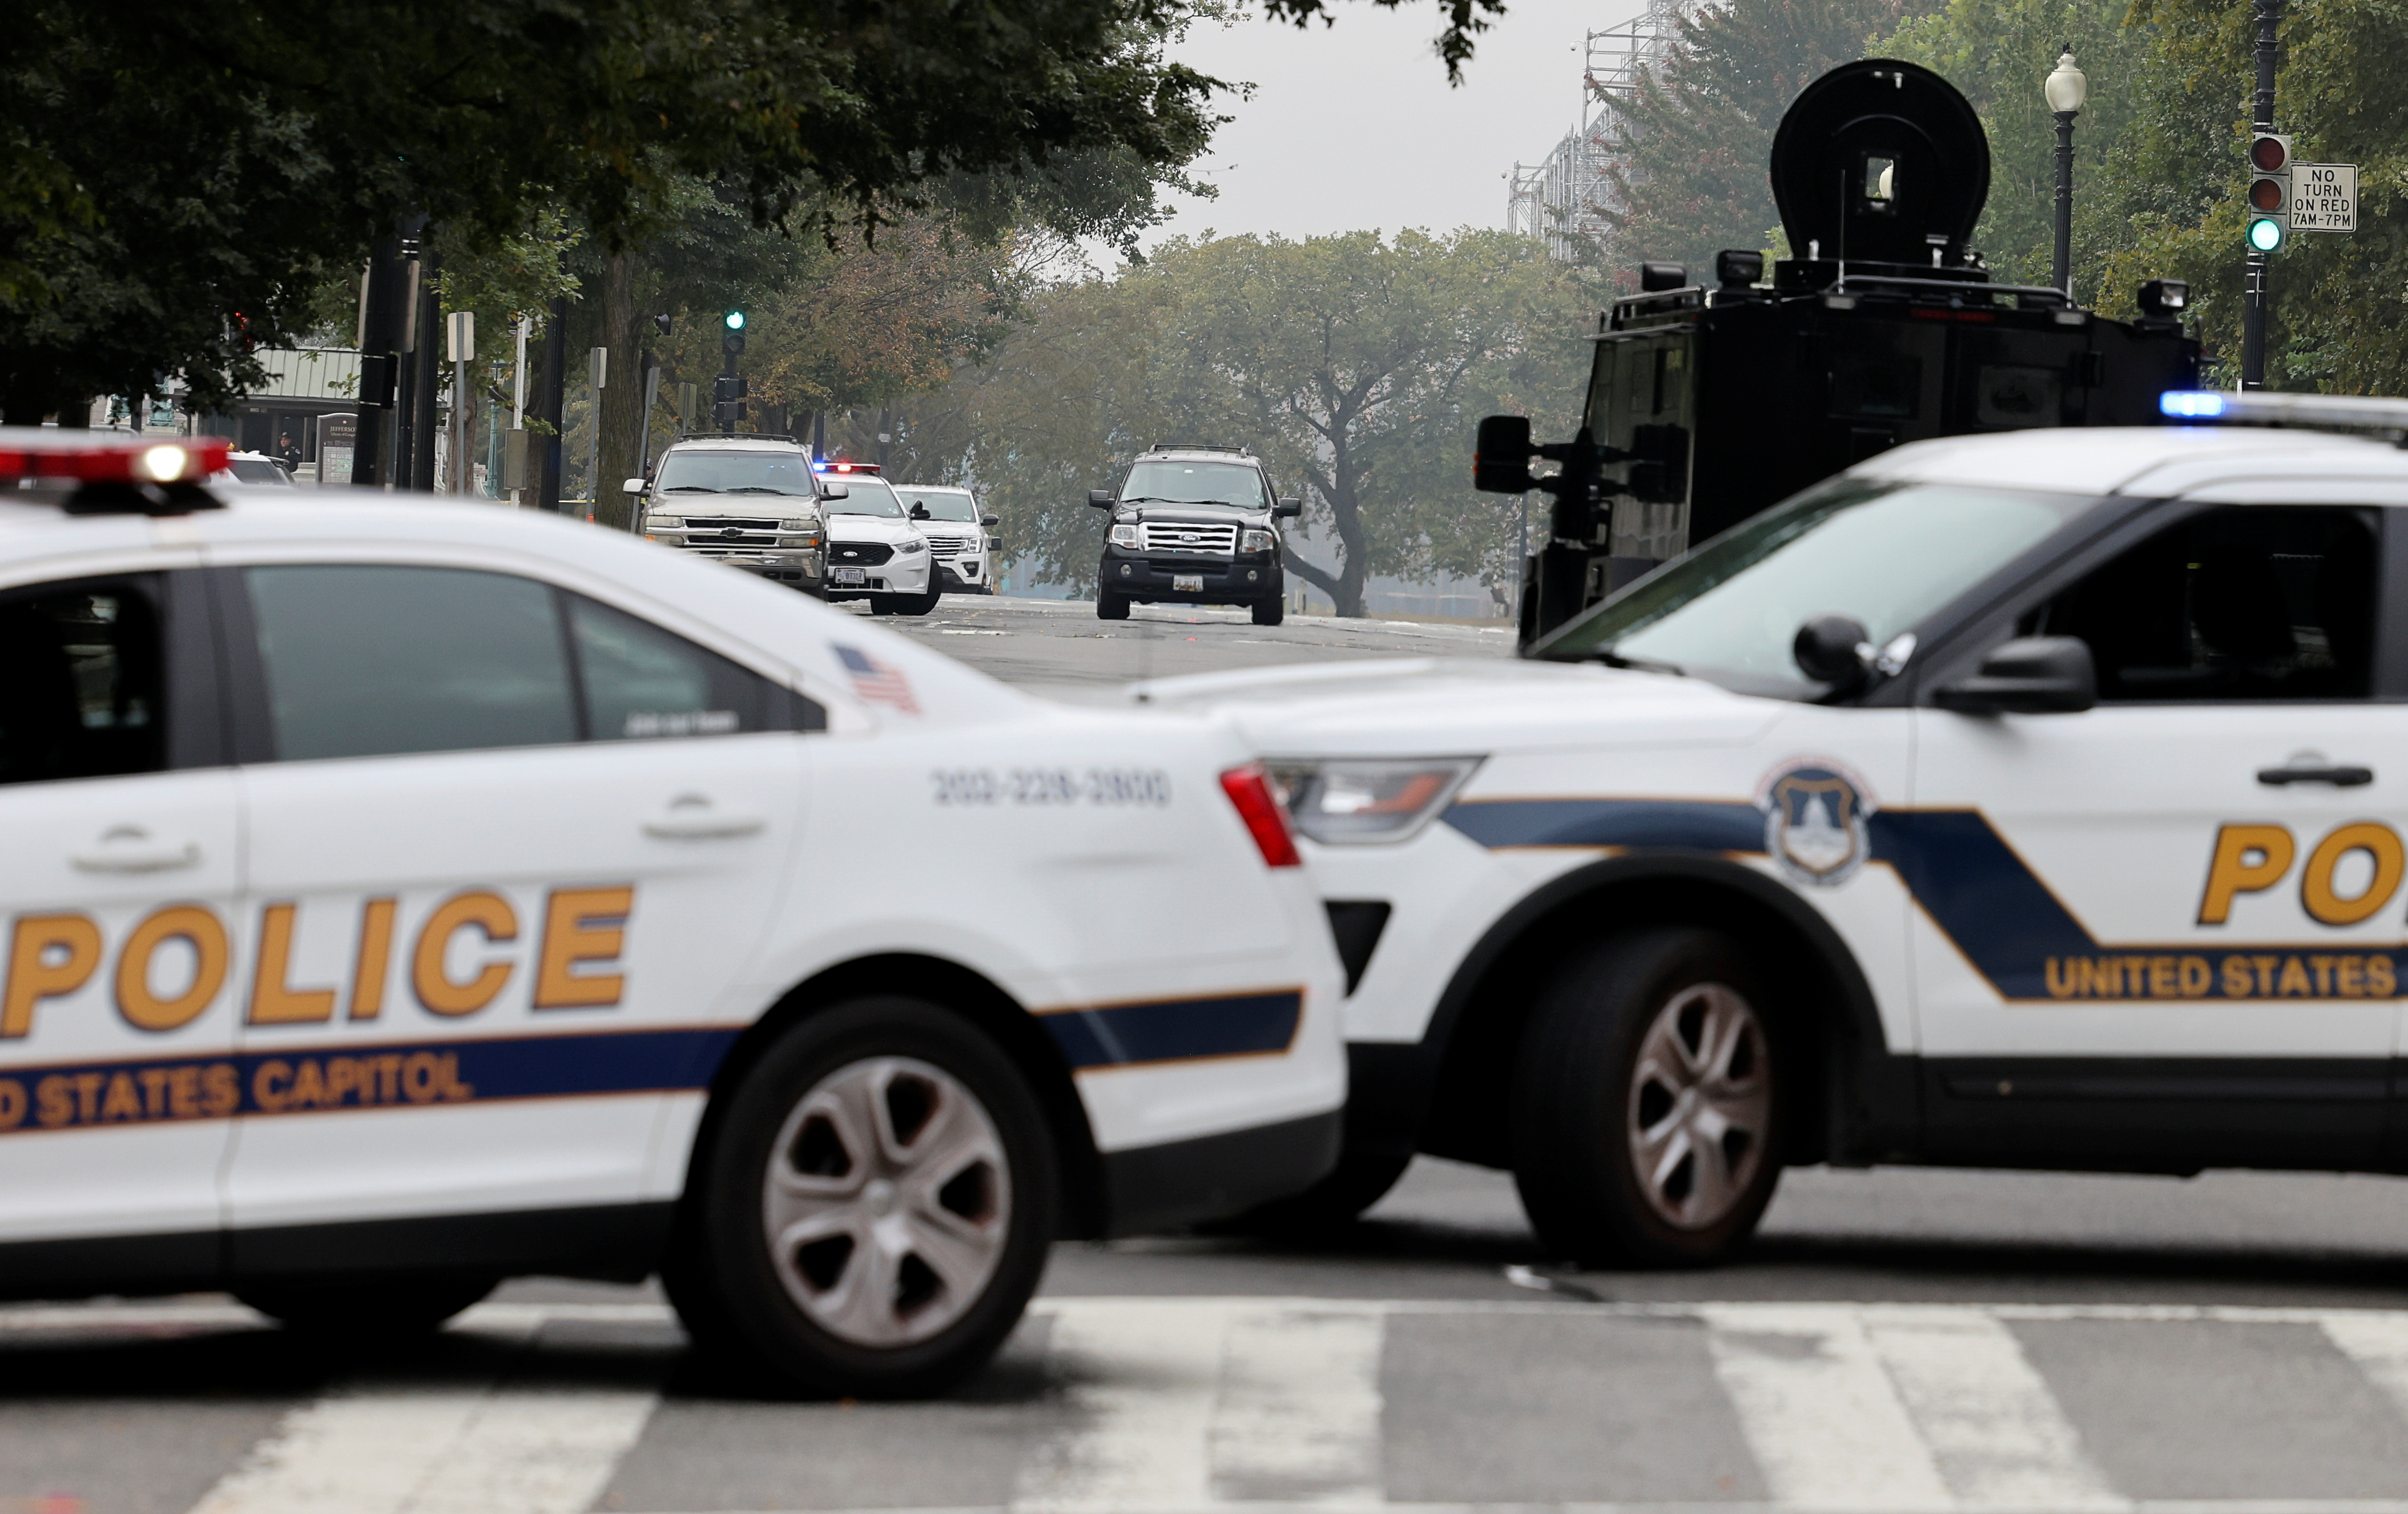 U.S. Capitol Police vehicles block a street as they investigate a suspicious vehicle (C) in front of the U.S. Supreme Court in Washington, U.S., October 5, 2021. REUTERS/Evelyn Hockstein